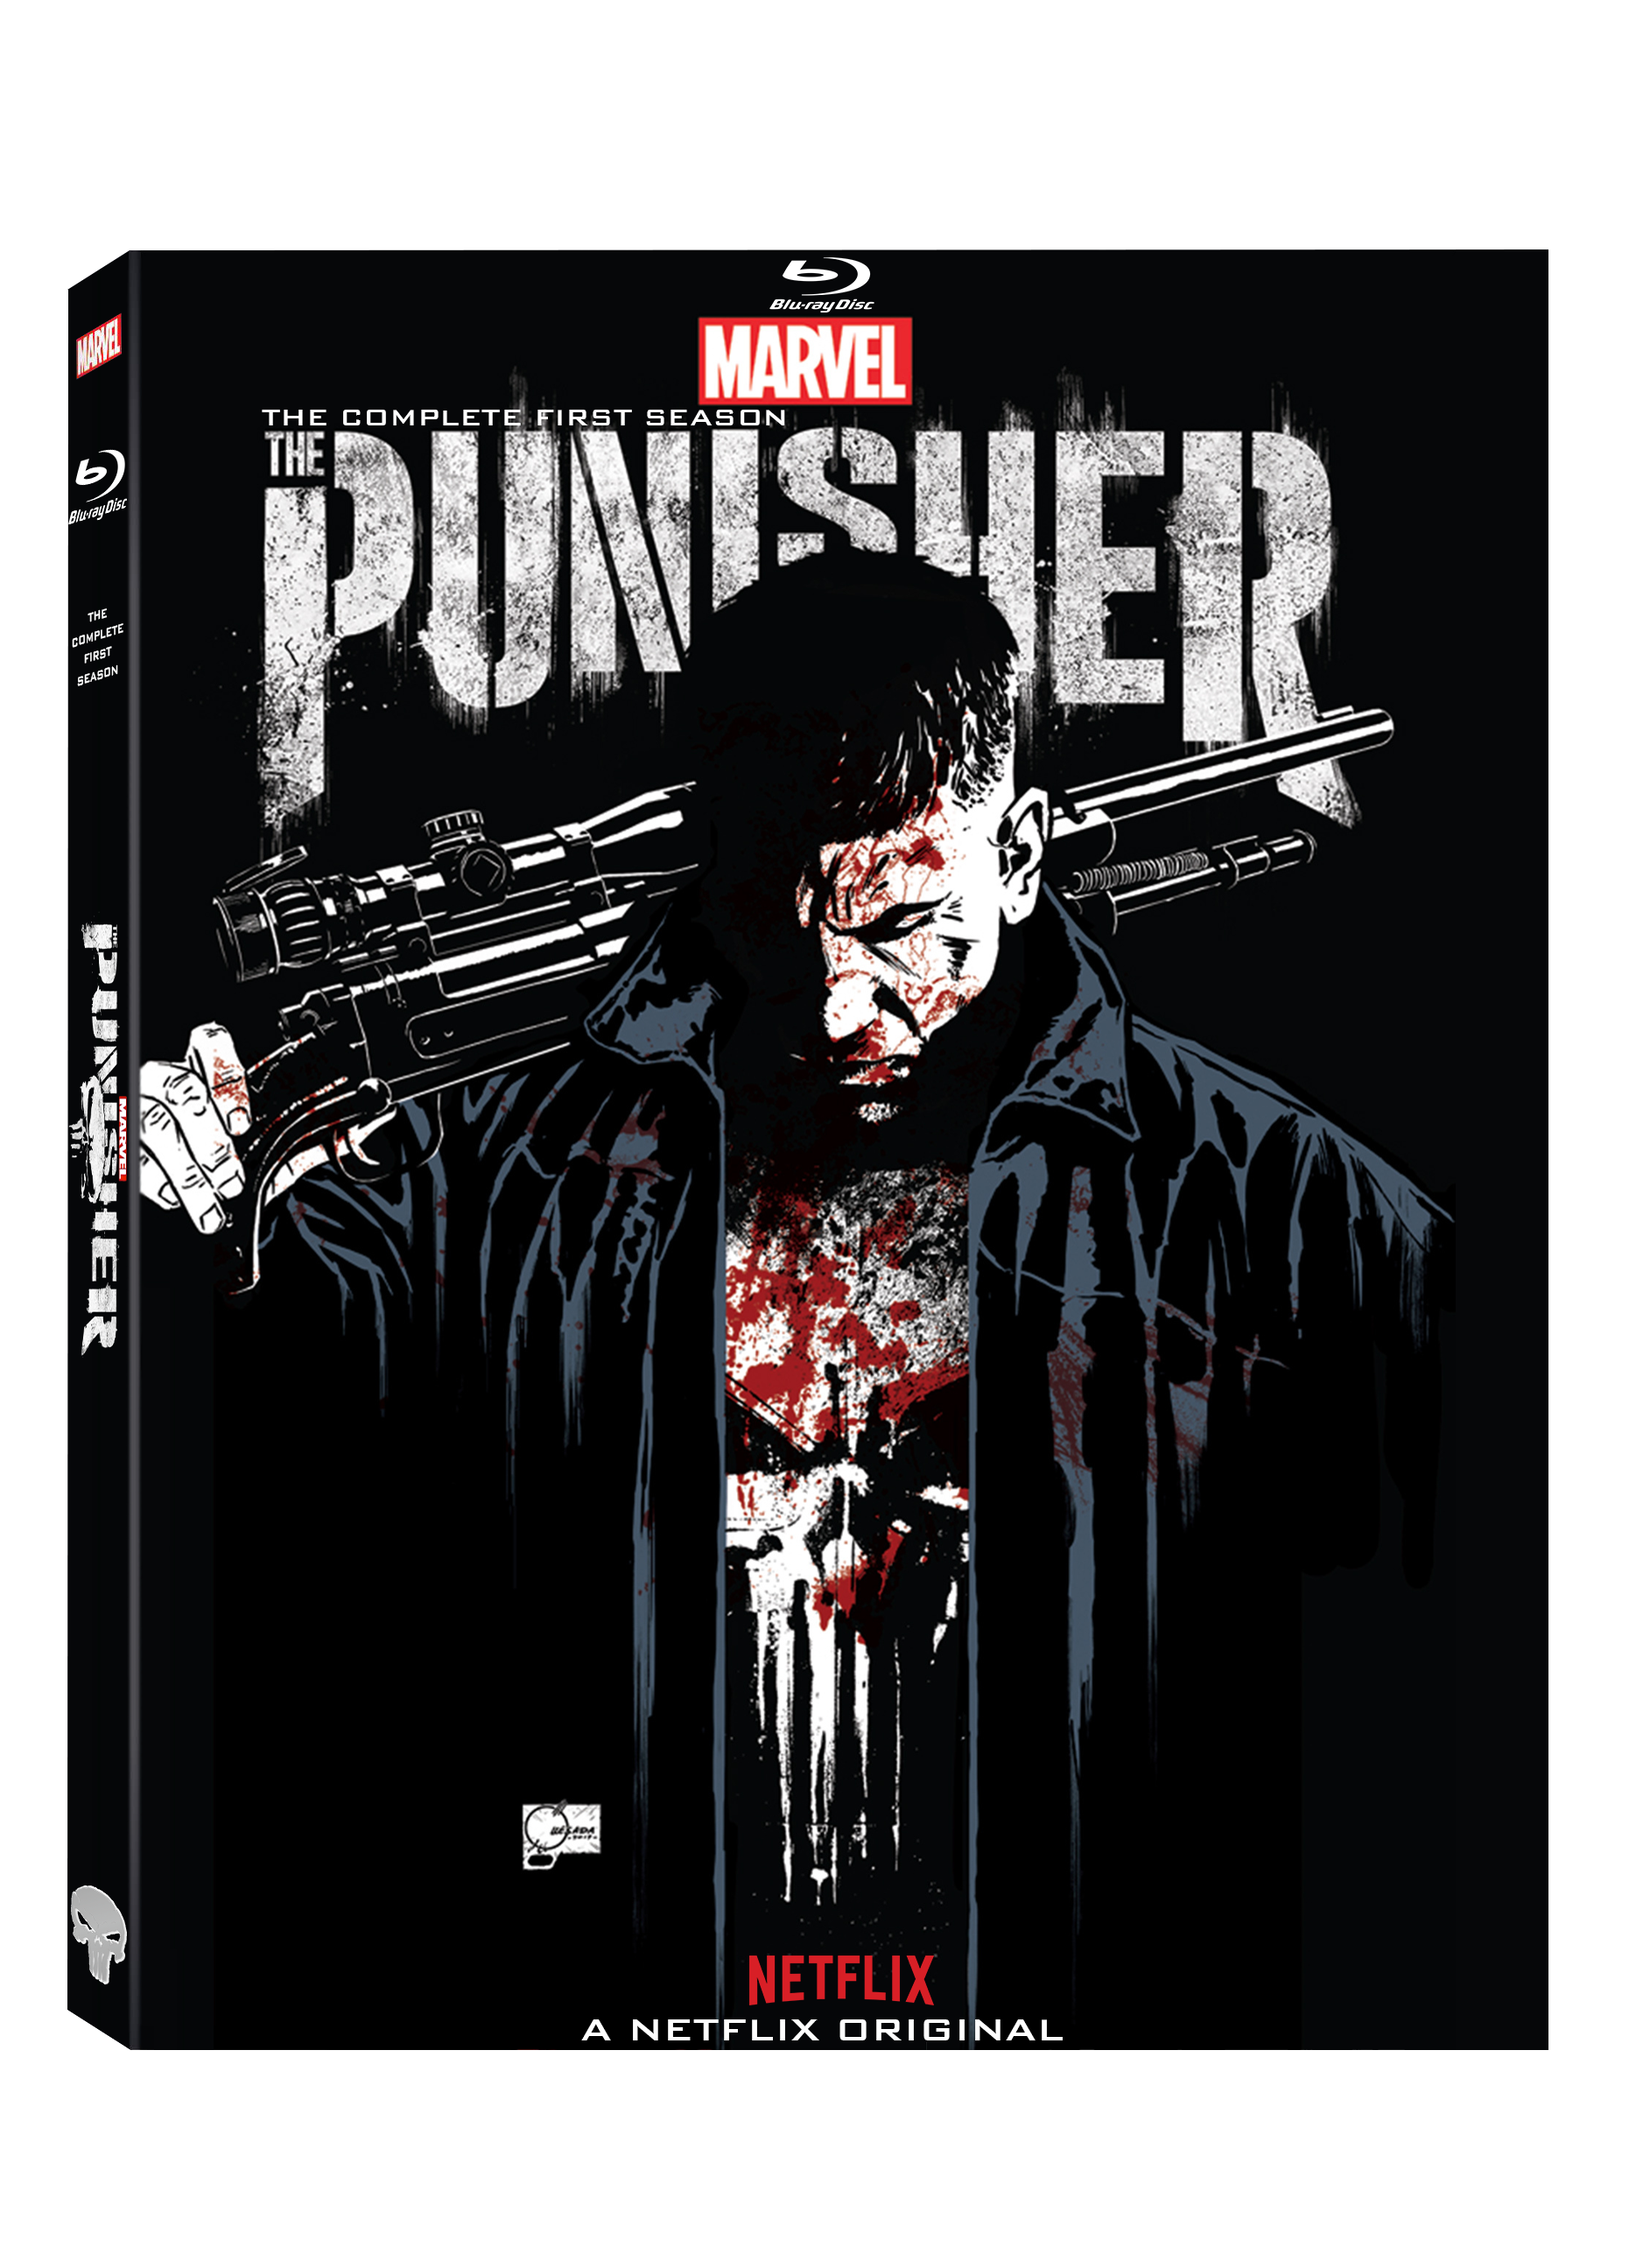 Netflix drawing poster. The punisher season blu